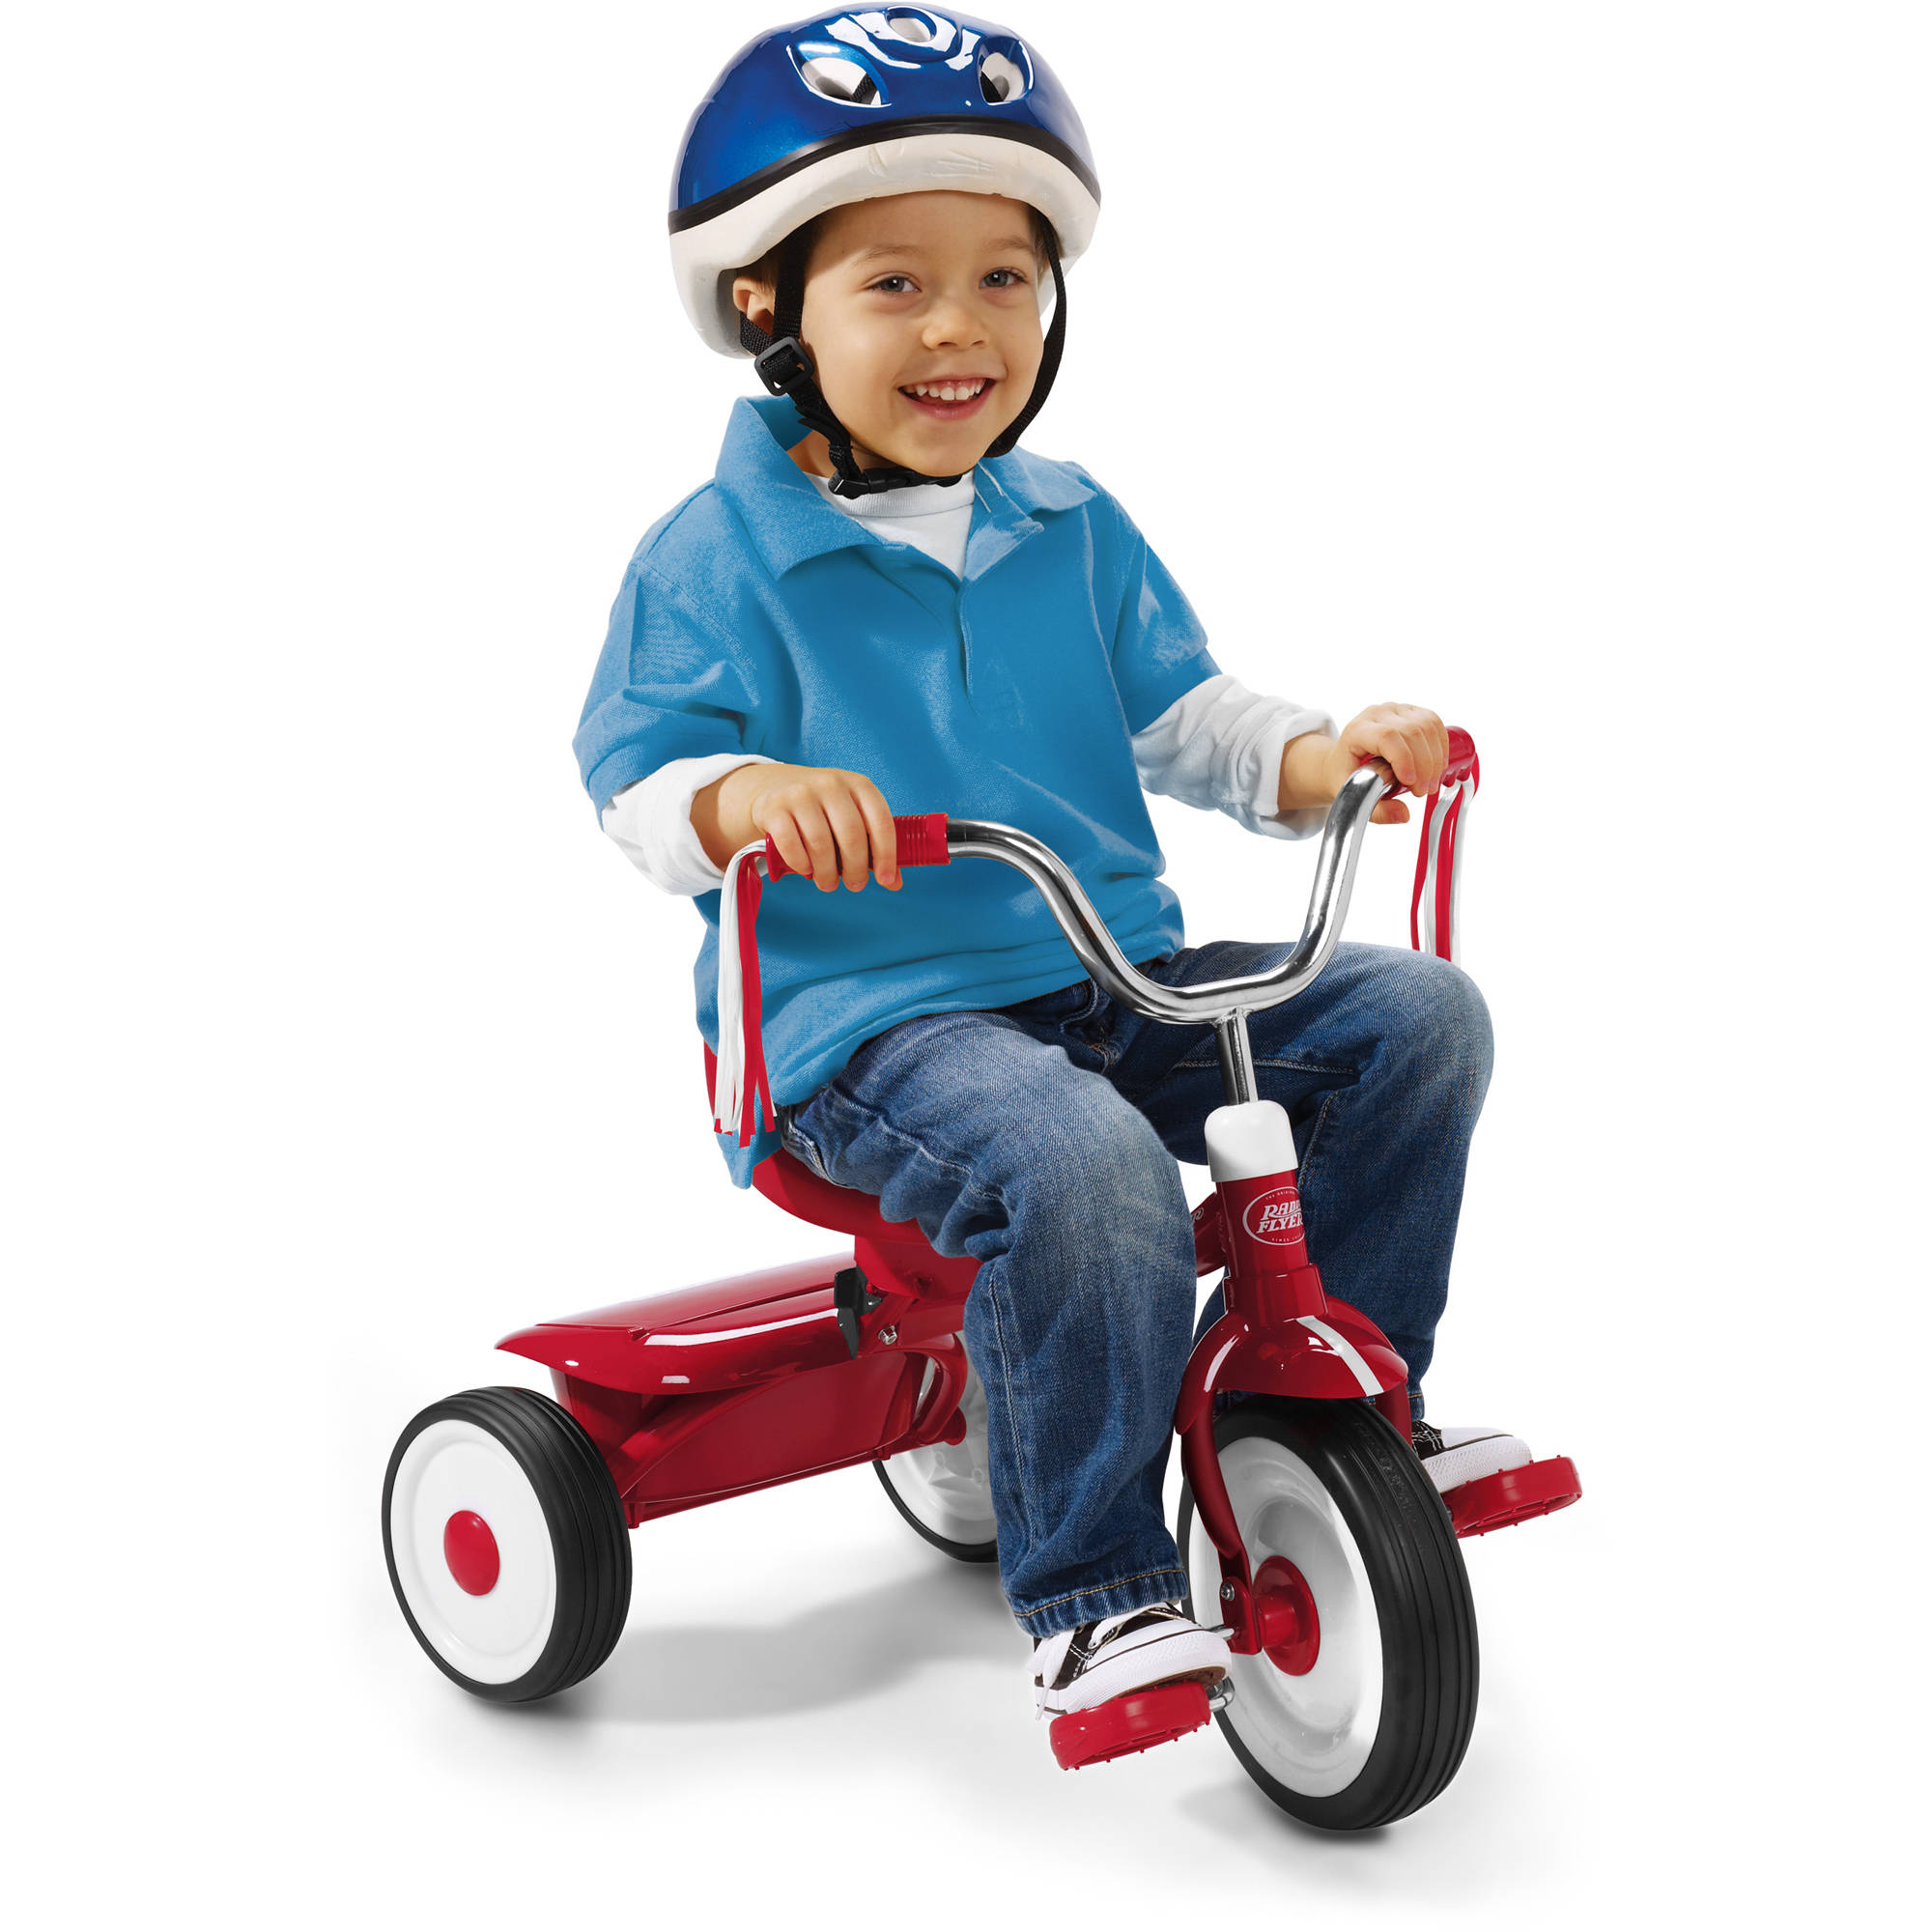 Radio Flyer Ready To Ride Folding Trike Fully Assembled